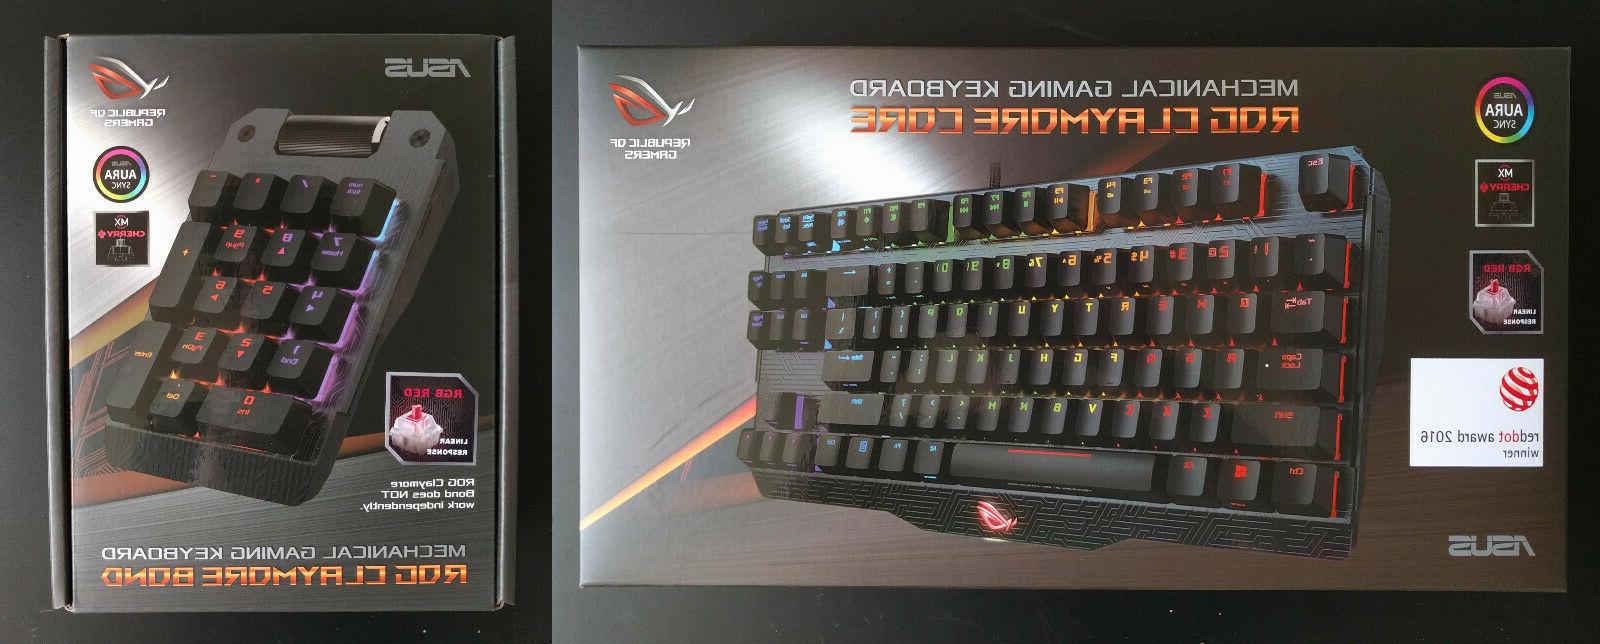 promo rog claymore core and bond cherry